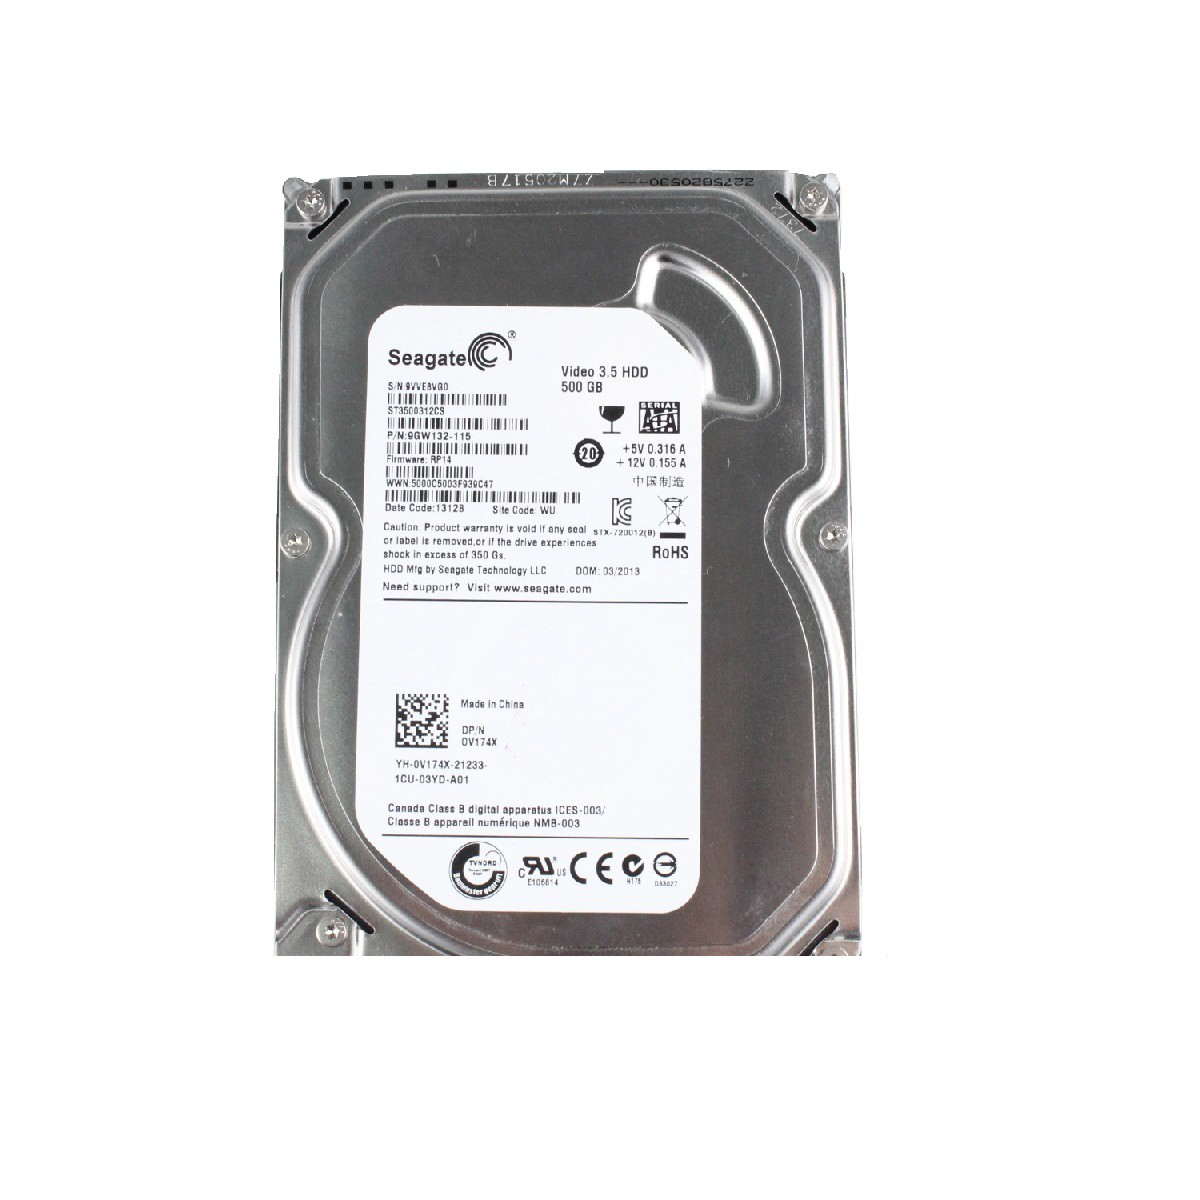 HD DIGITAL 500GB SATA